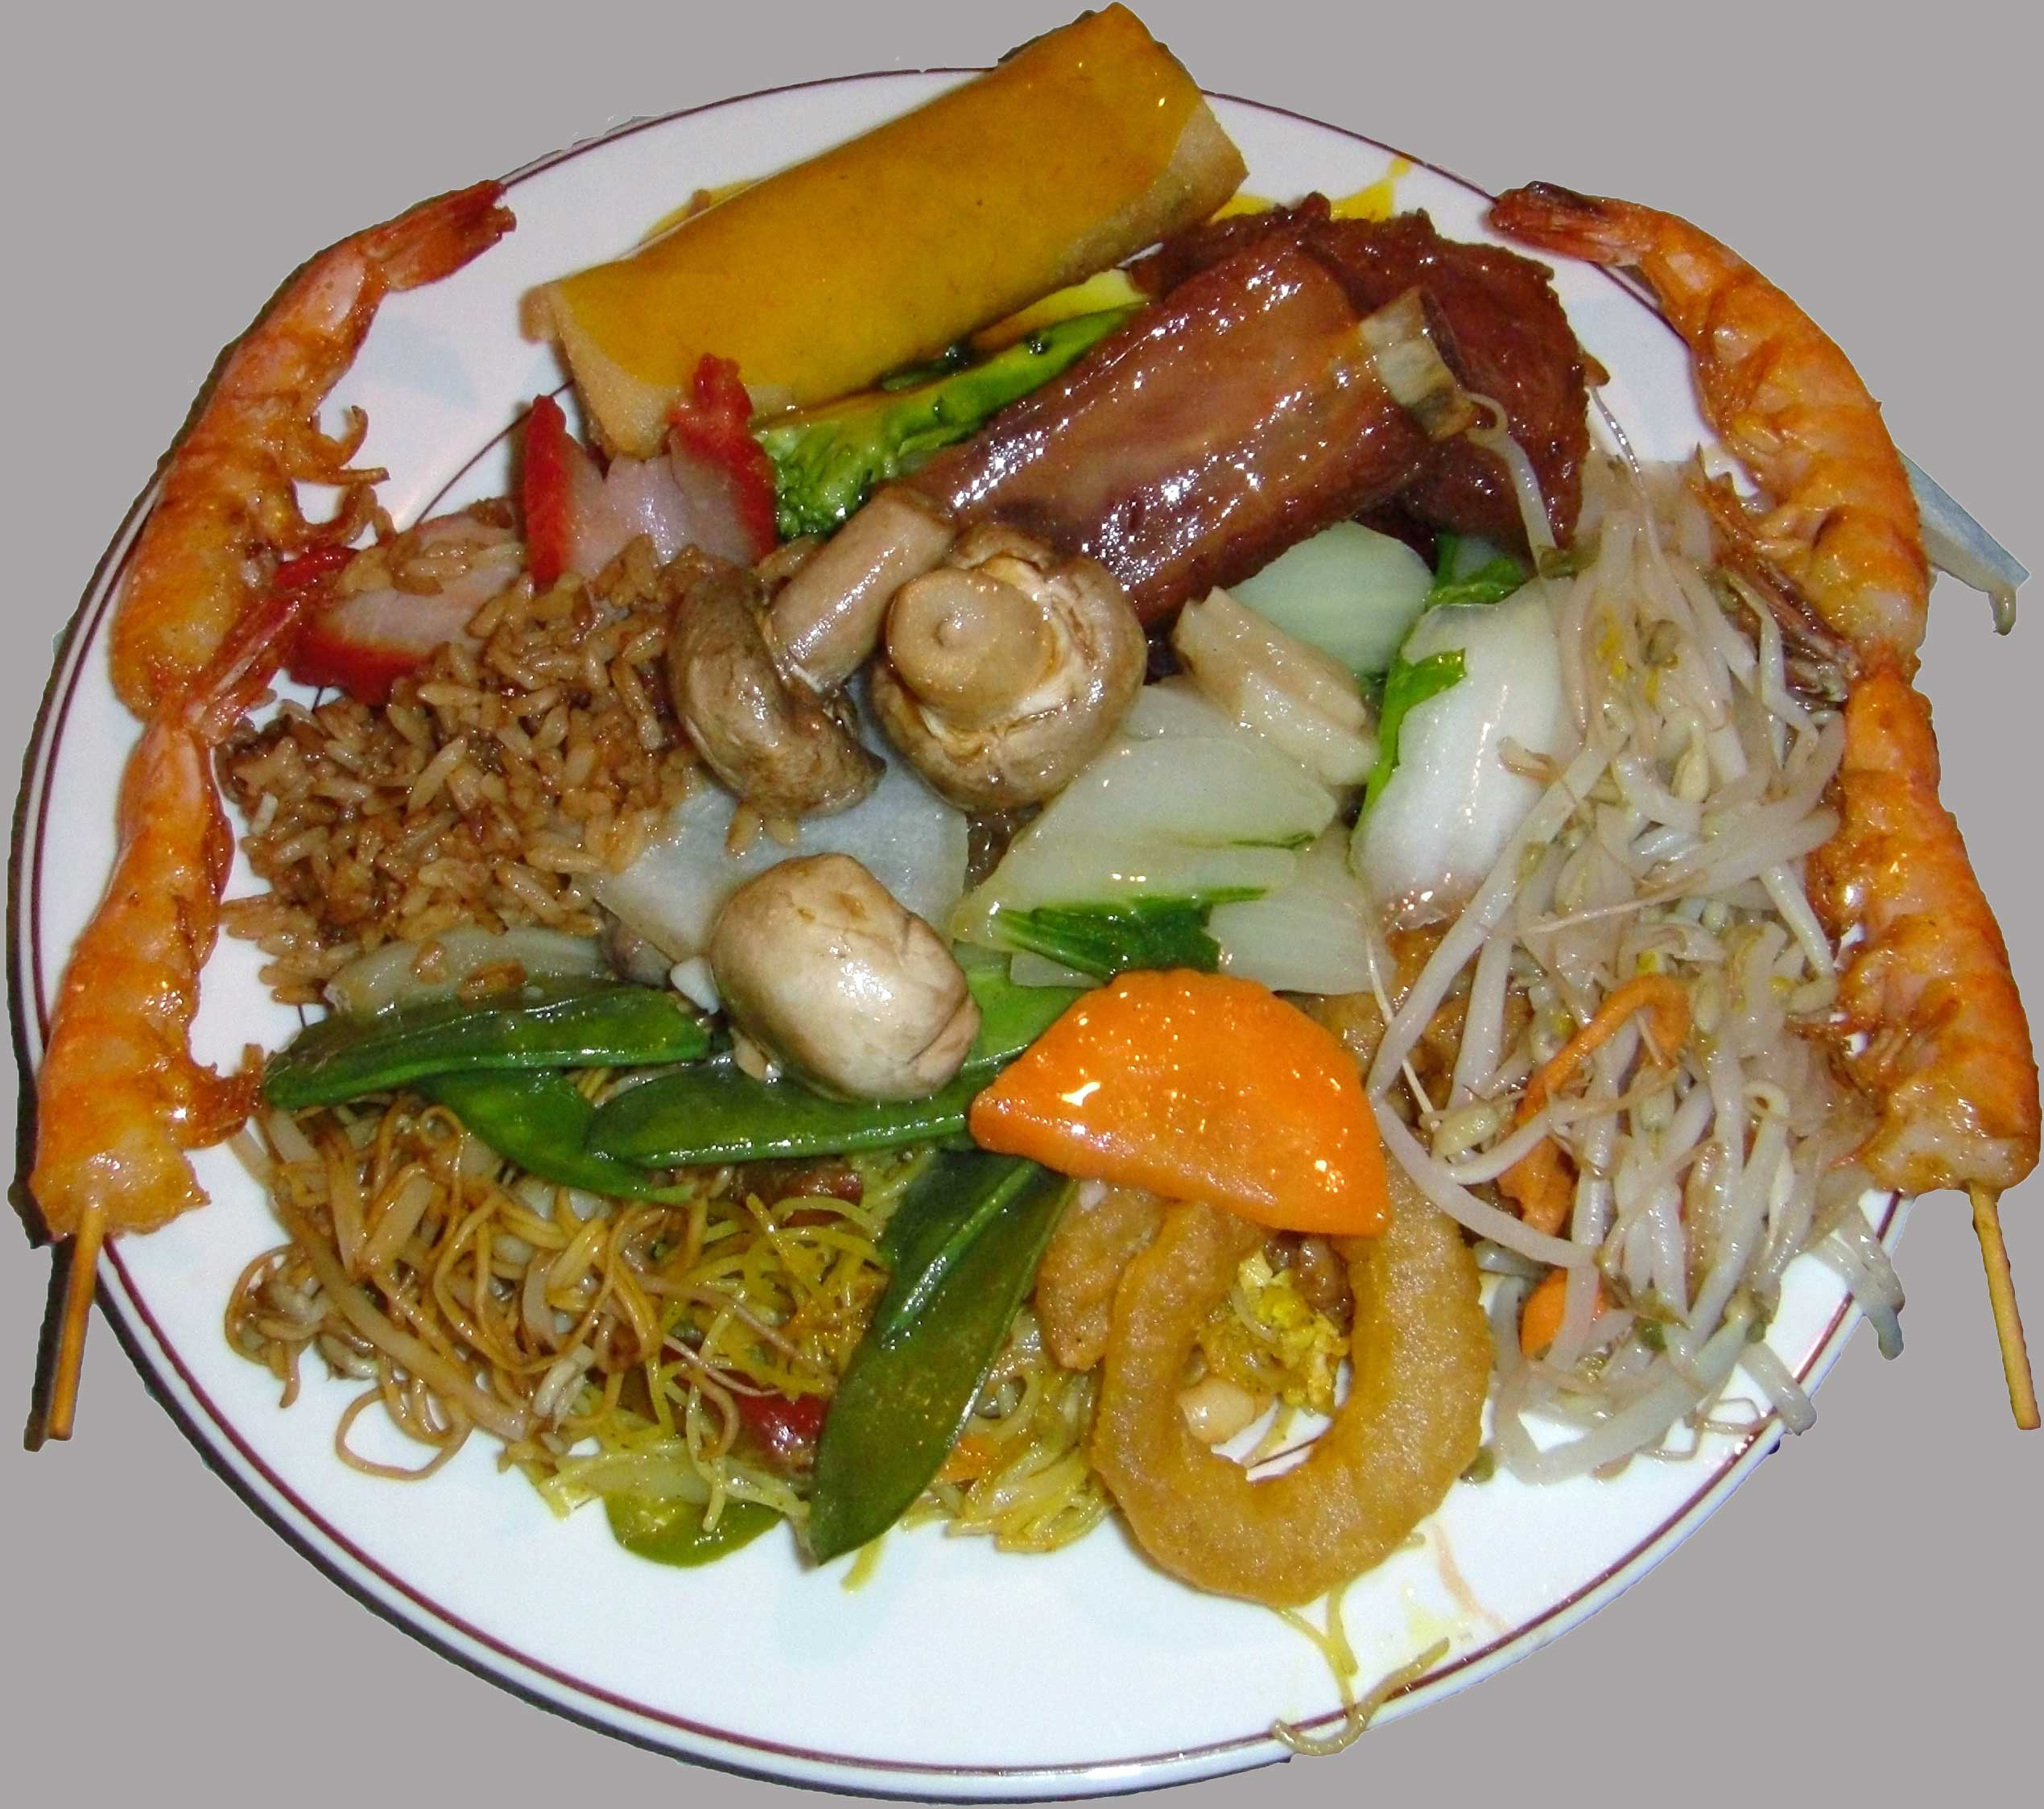 Just down the road from the pearl is a ruby king for Asian cuisine buffet